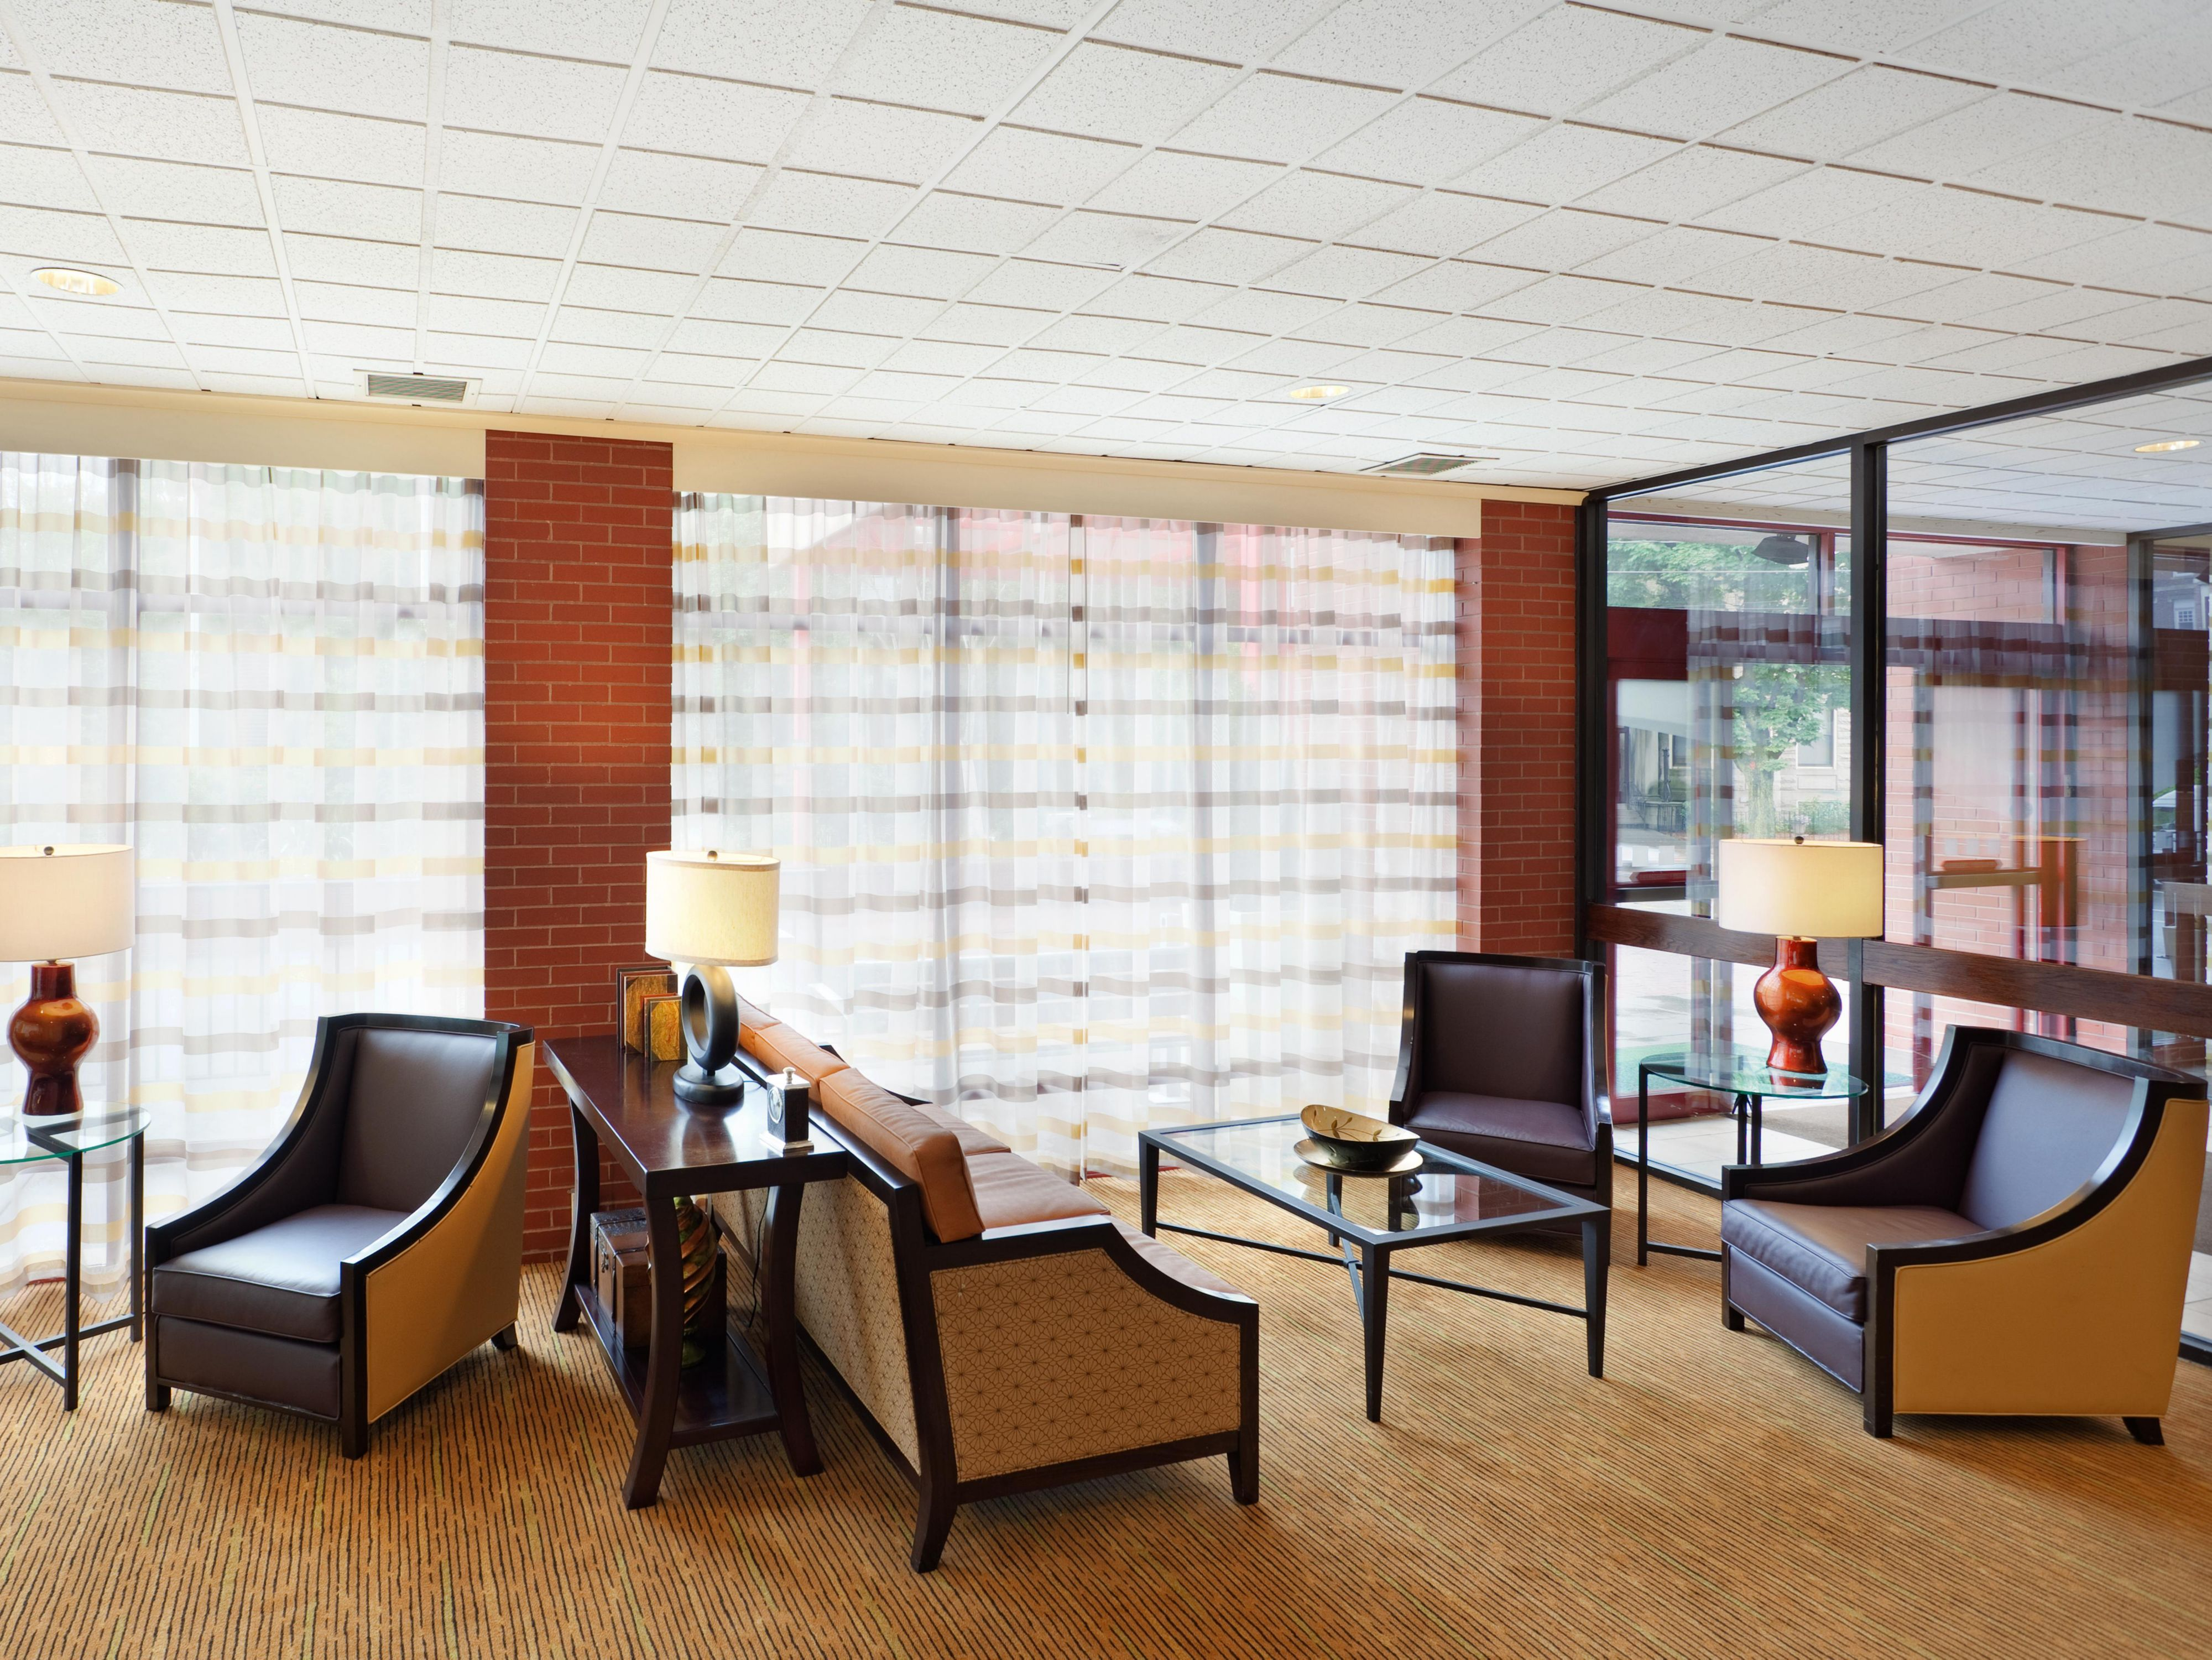 Guests can enjoy a morning cup of coffee in our bright  lobby.